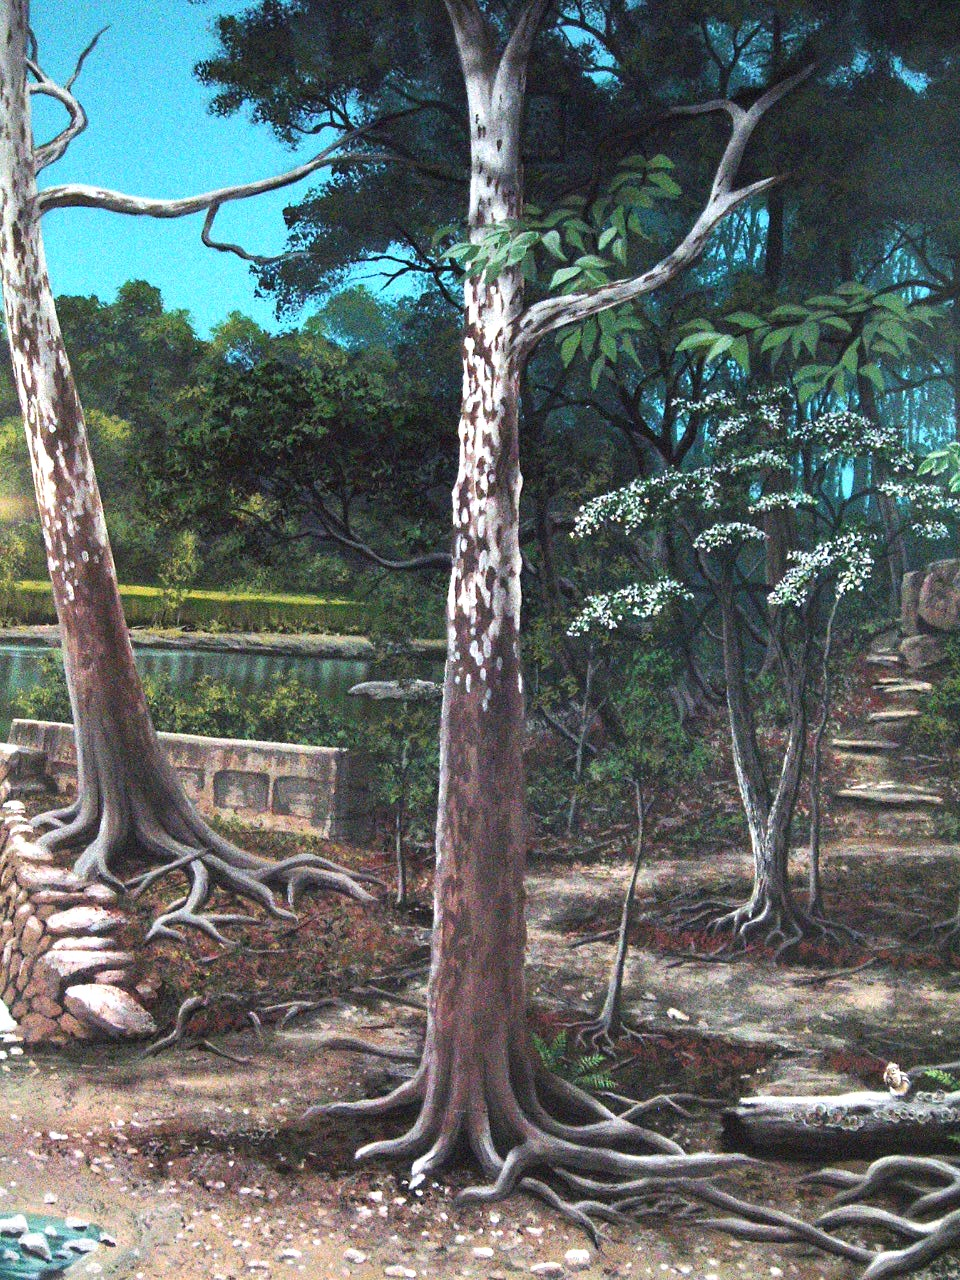 Pennypack-Environmental-Center-mural-trees-Paul-Barker